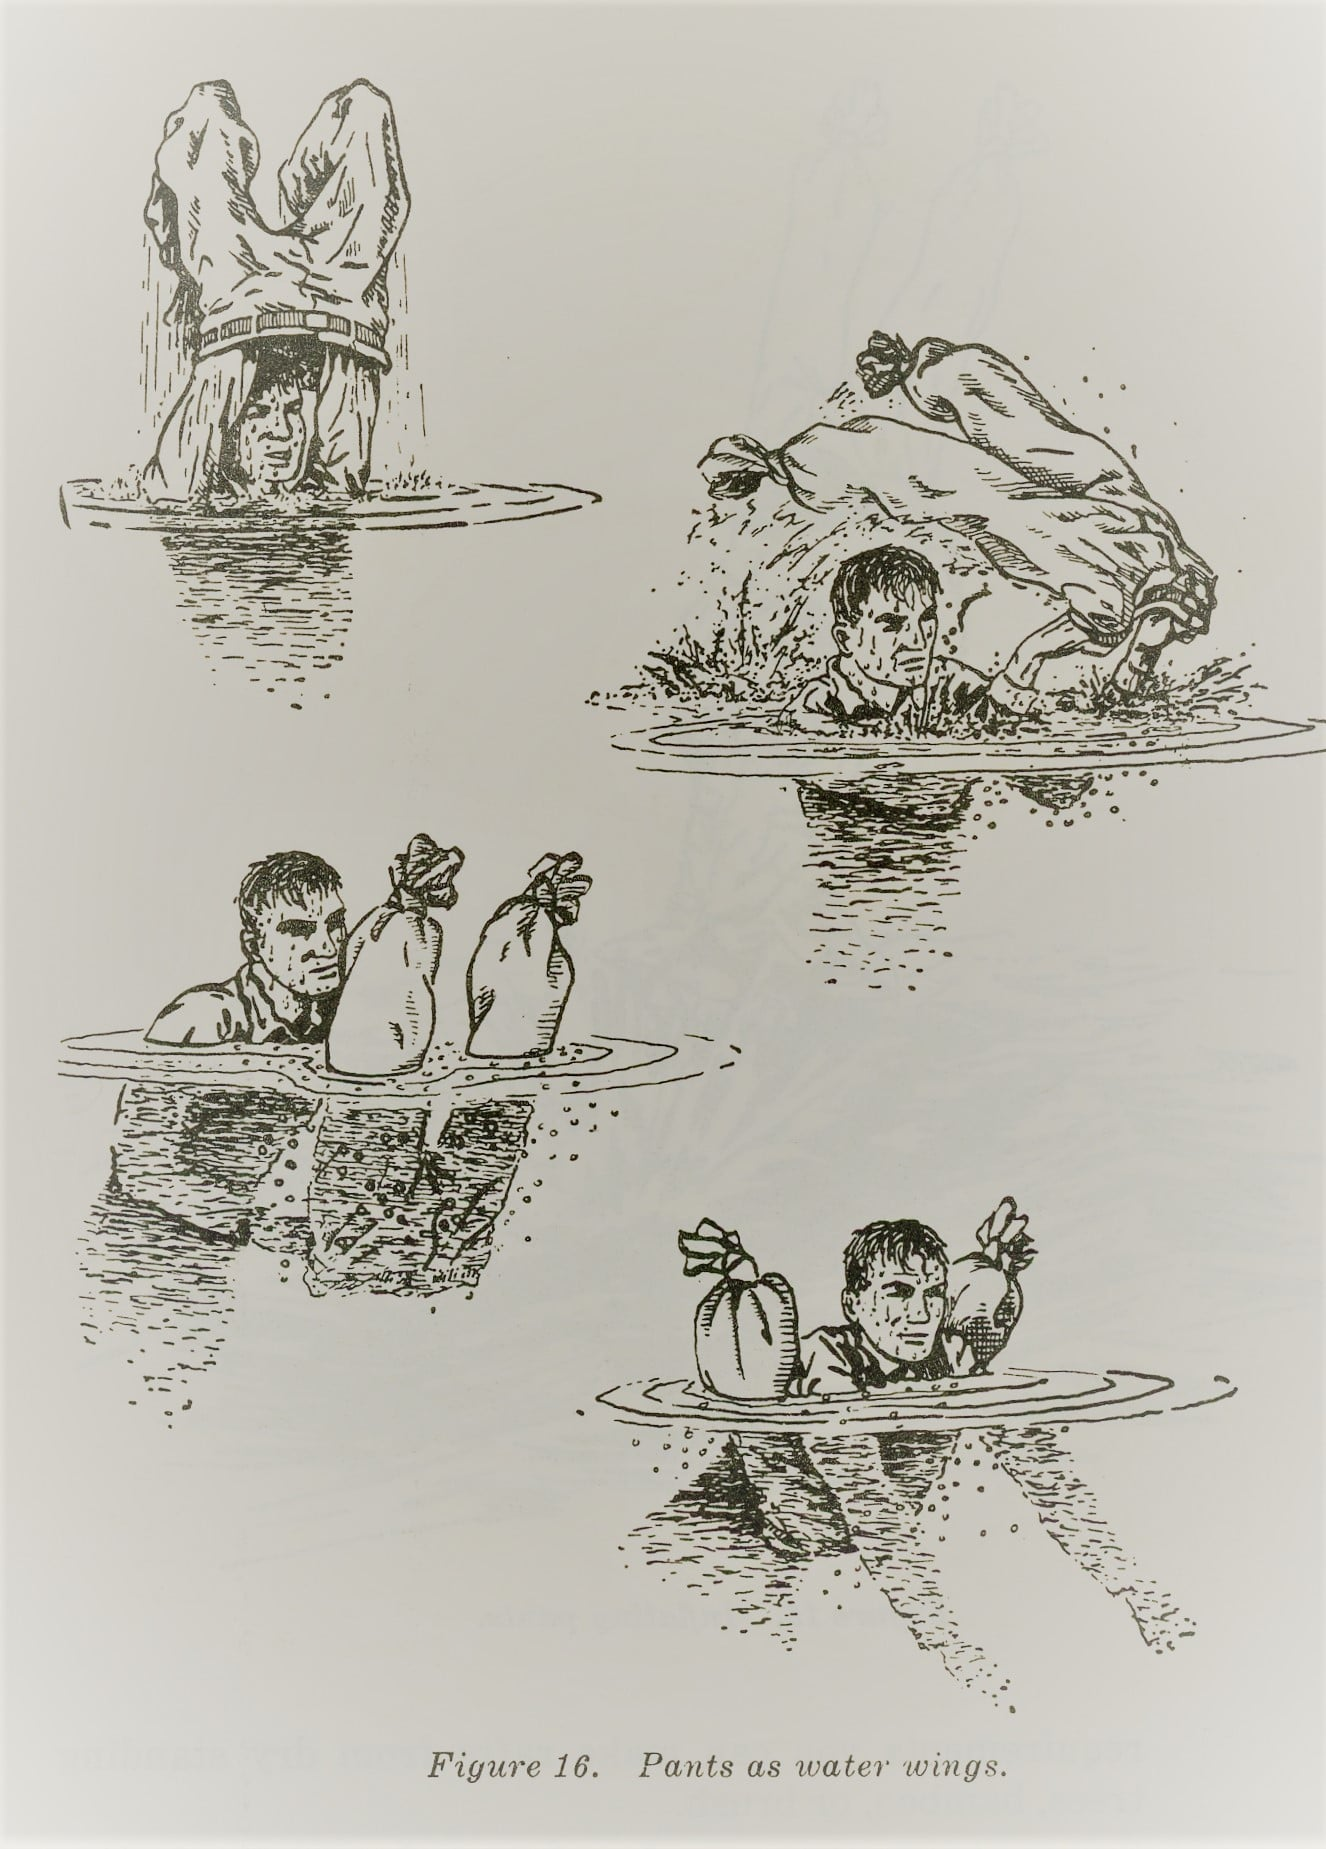 vintage survival illustration using pants as flotation device